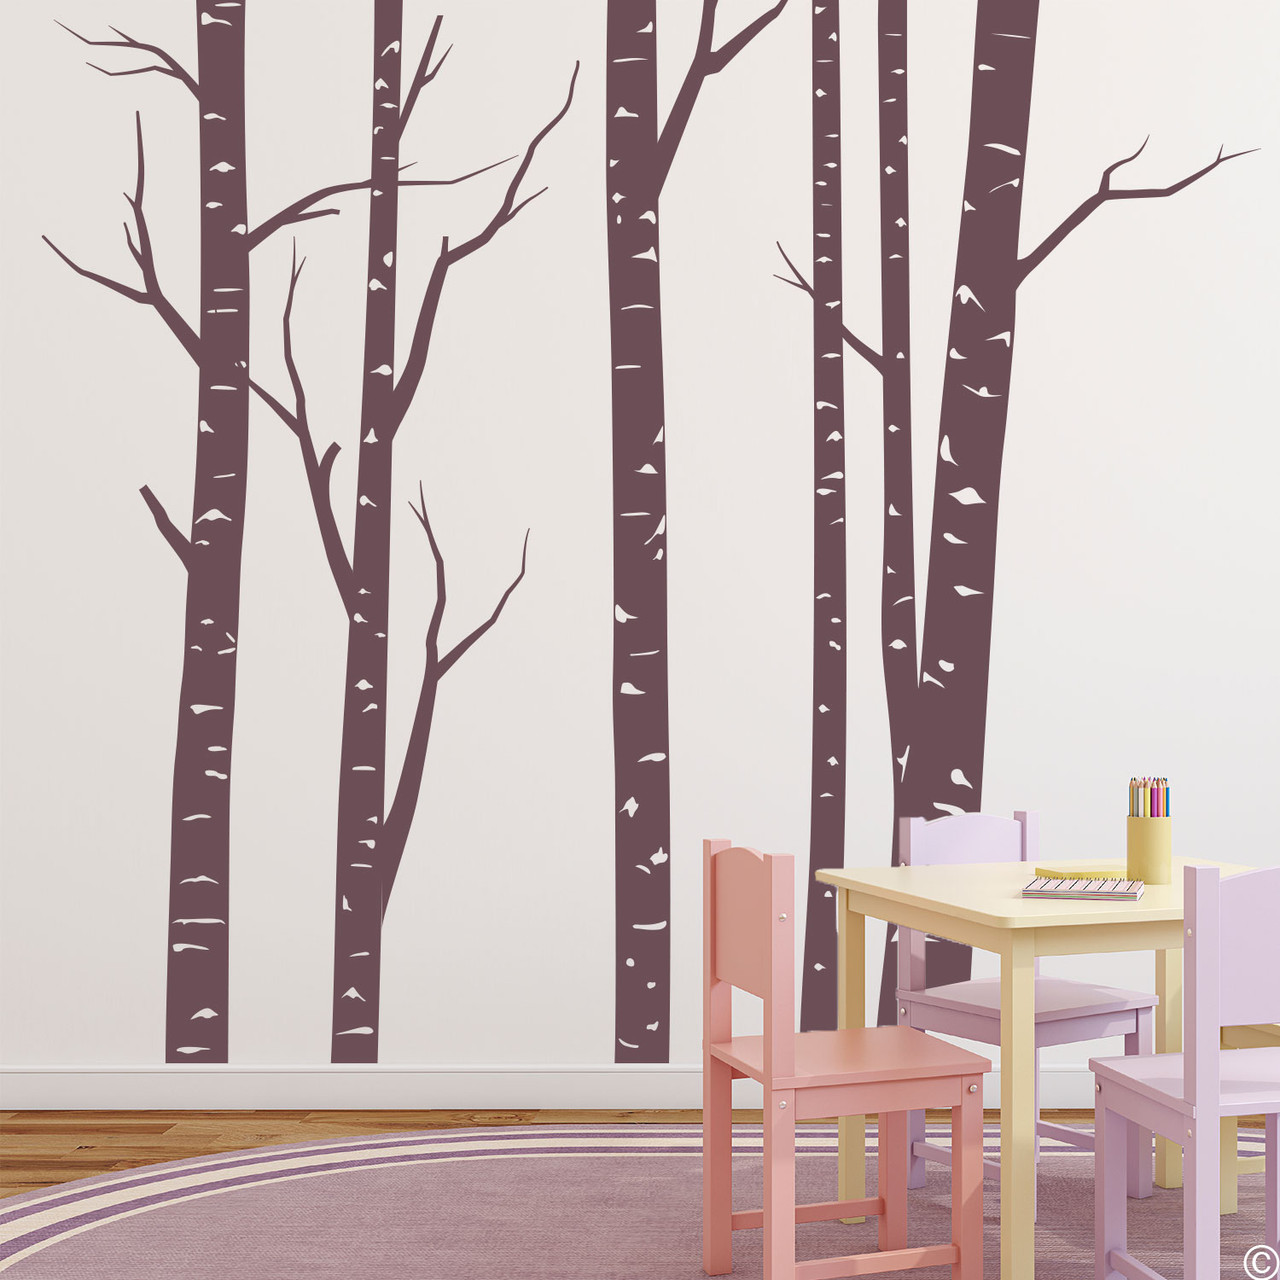 Aspen forest wall decal mural in limited edition eggplant vinyl color.